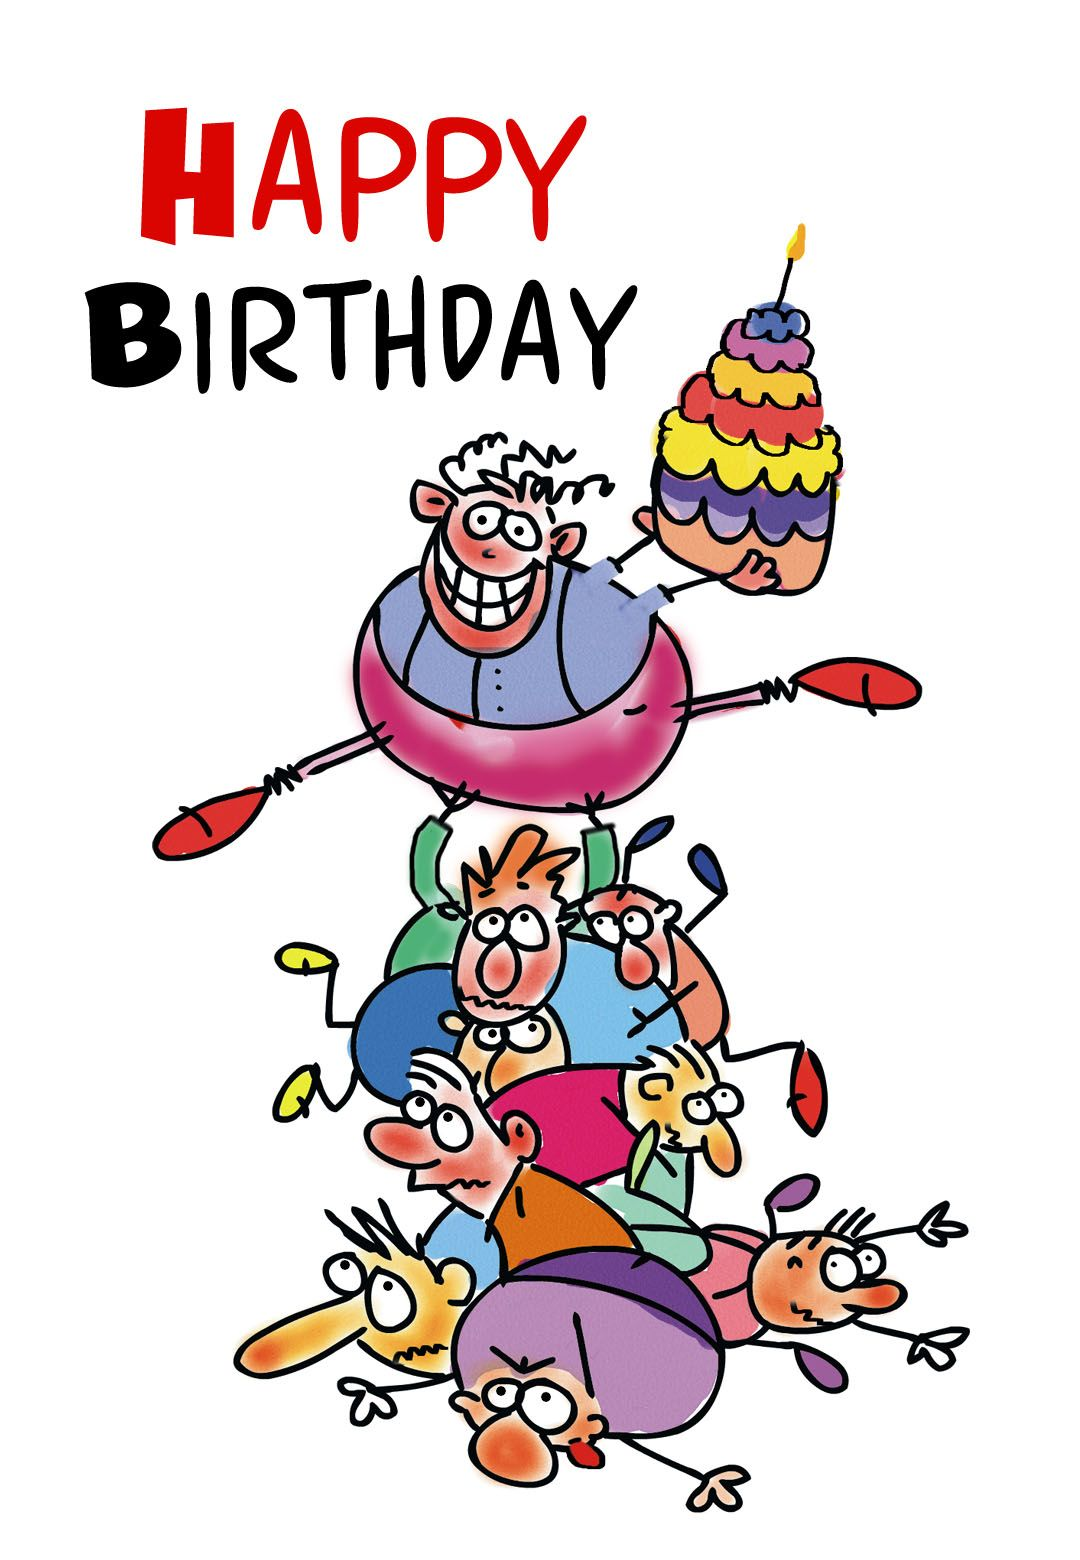 image relating to Funny Printable Cards referred to as Totally free Printable Amusing Birthday Greeting Card Items in the direction of deliver